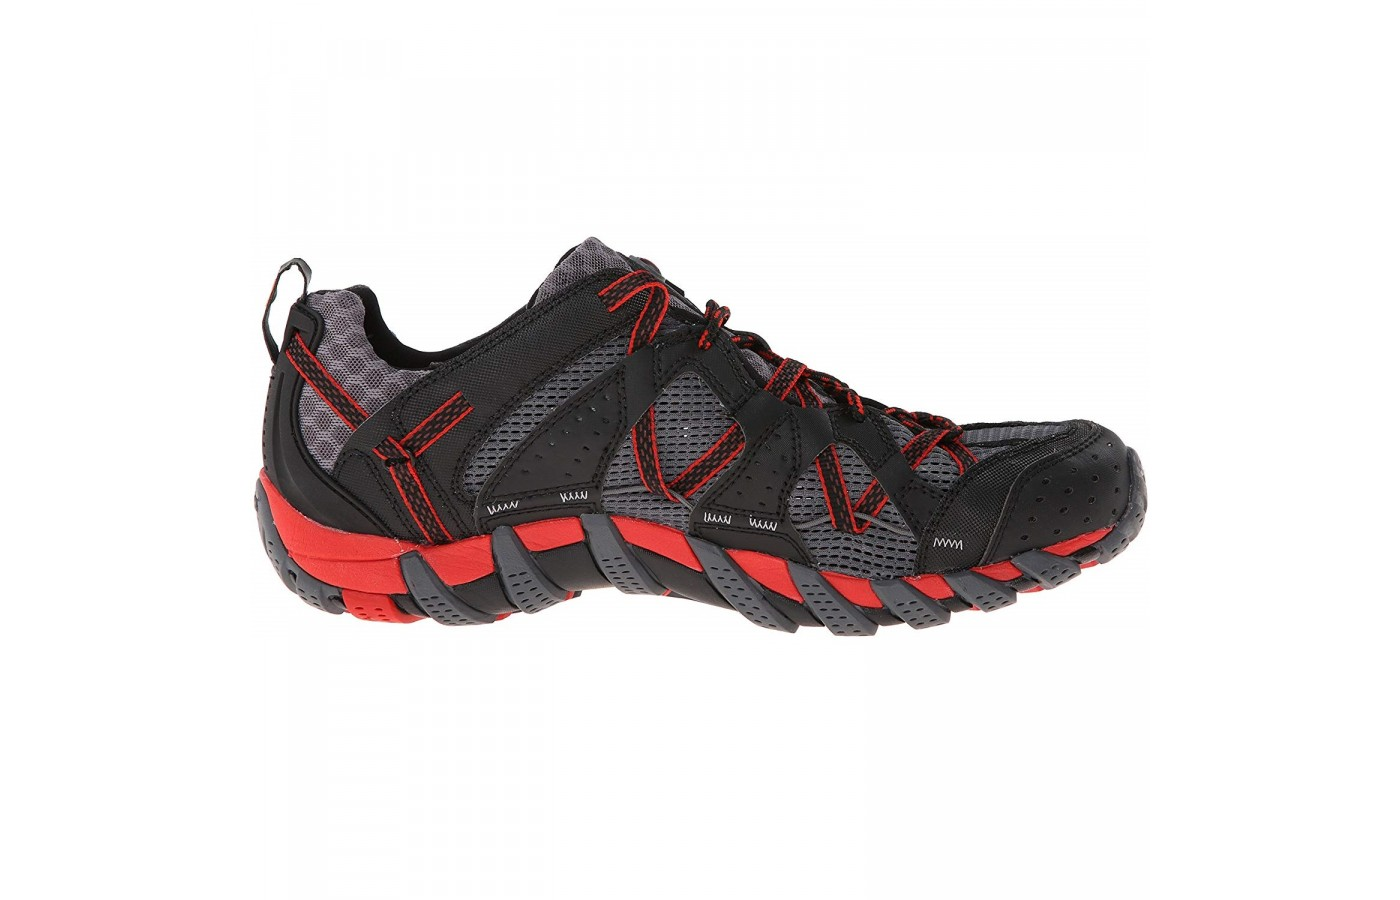 The Merrell Waterpro Maipo offers a synthetic toe bumper for protection of the toes and shoe.